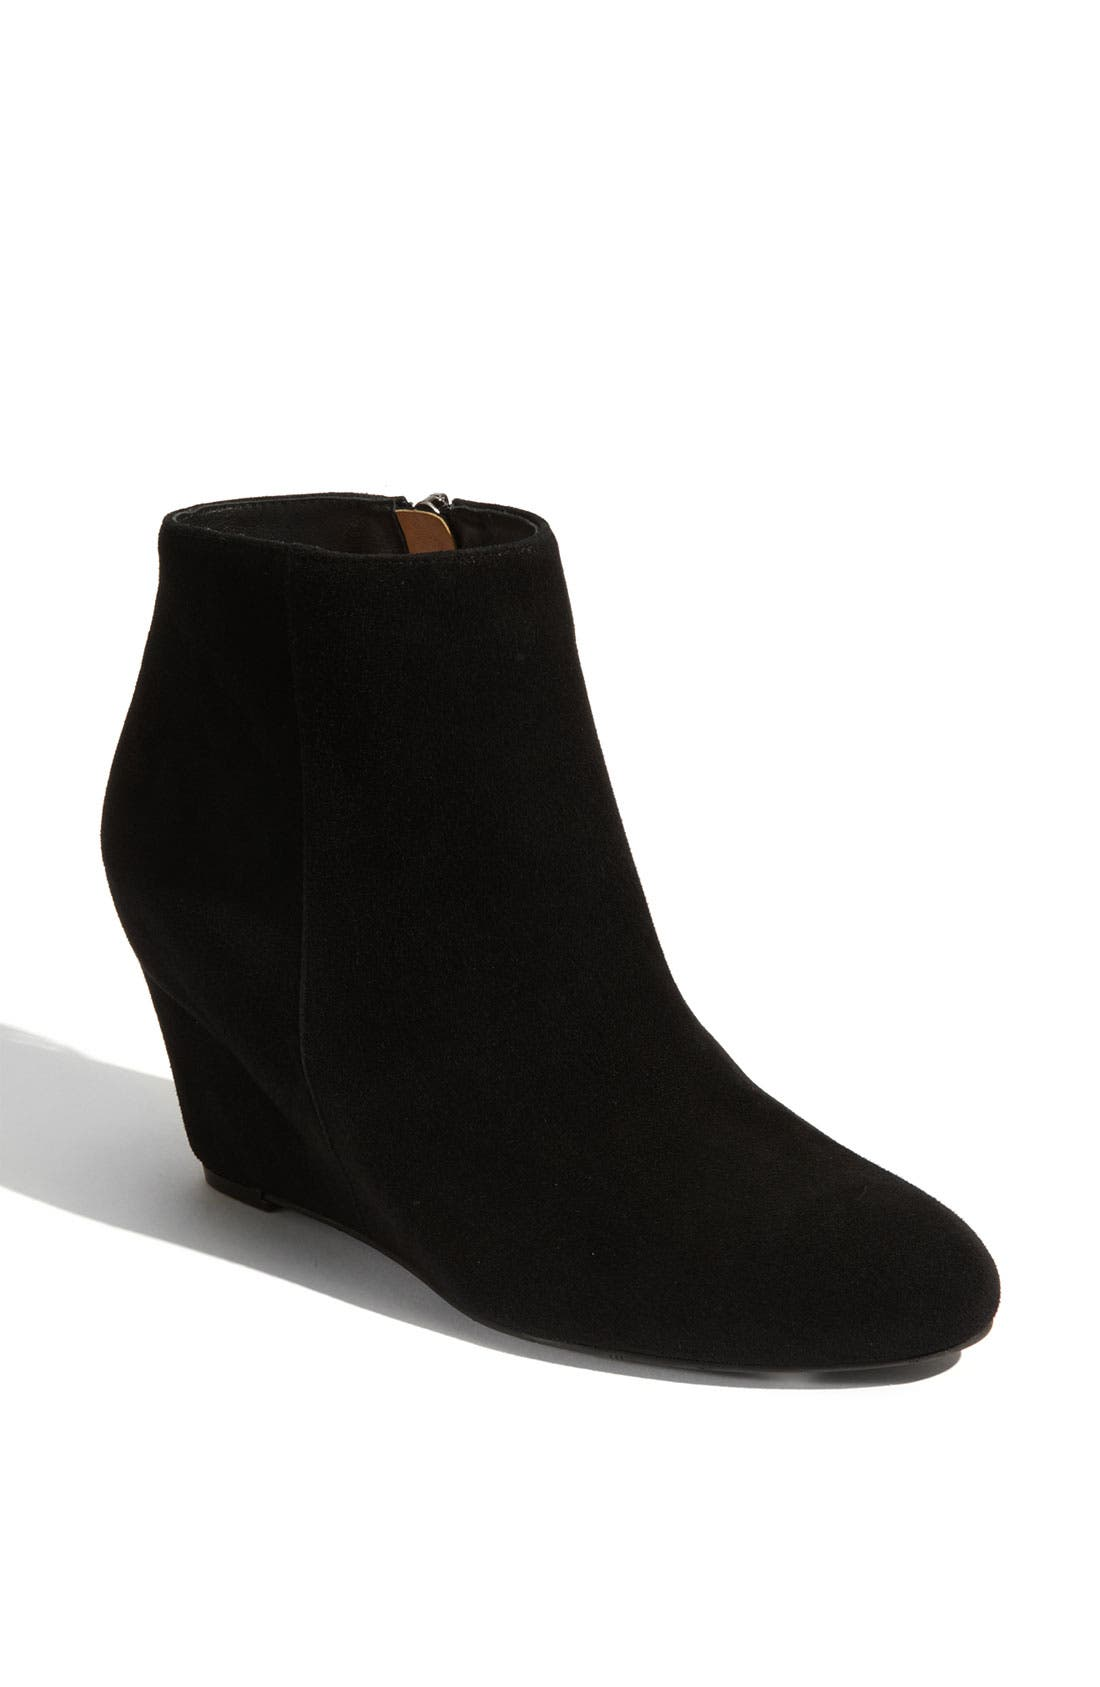 Alternate Image 1 Selected - Via Spiga 'Harrison' Wedge Bootie